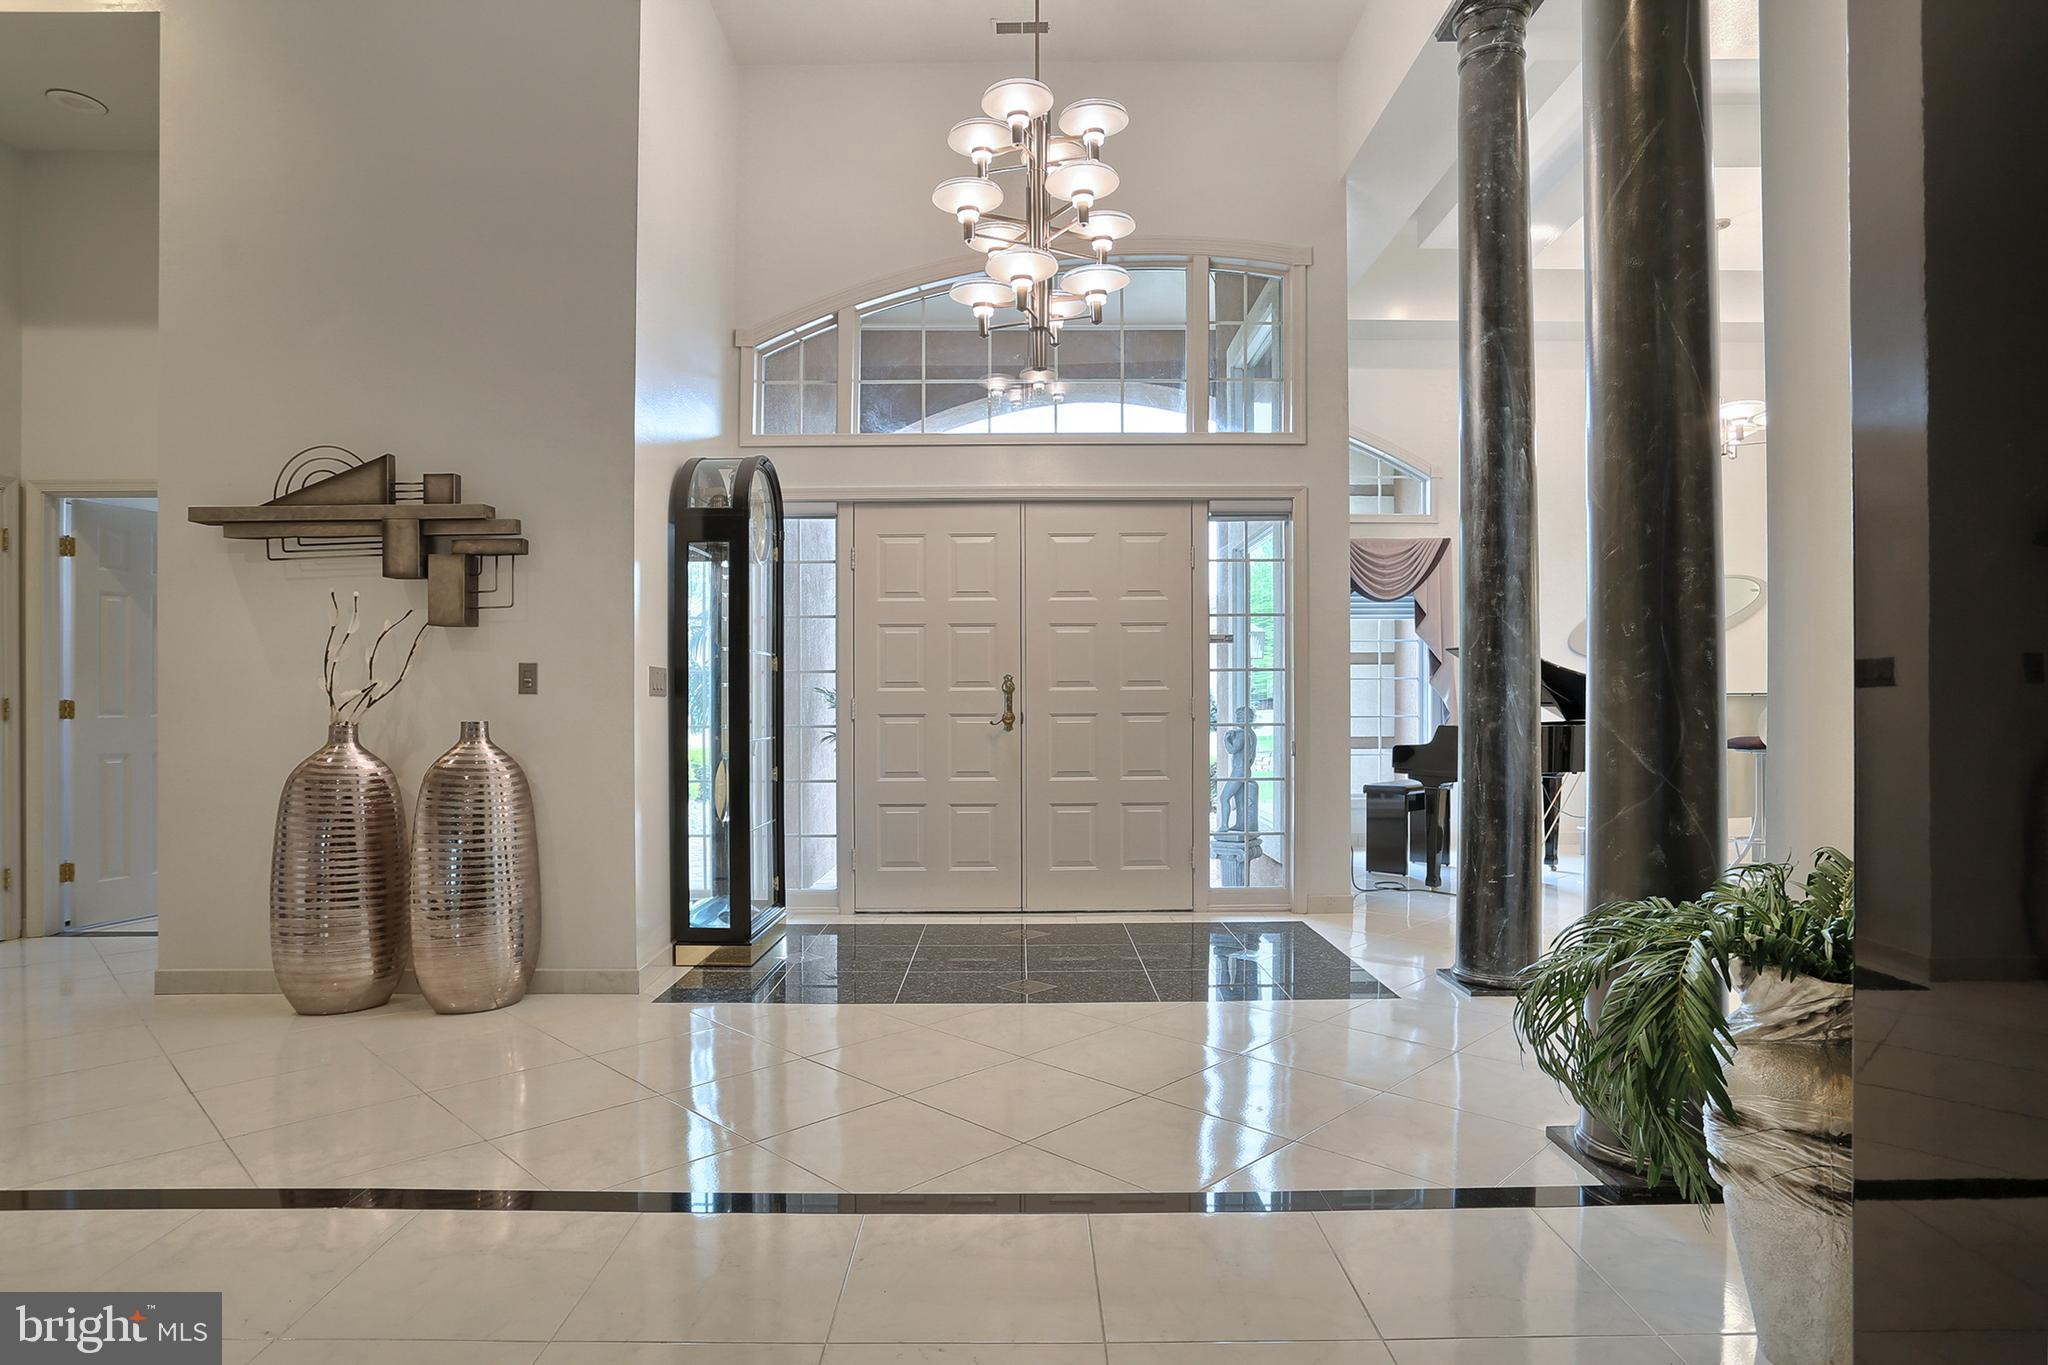 9' x 9' foyer with 14' ceilings and porcelain tile